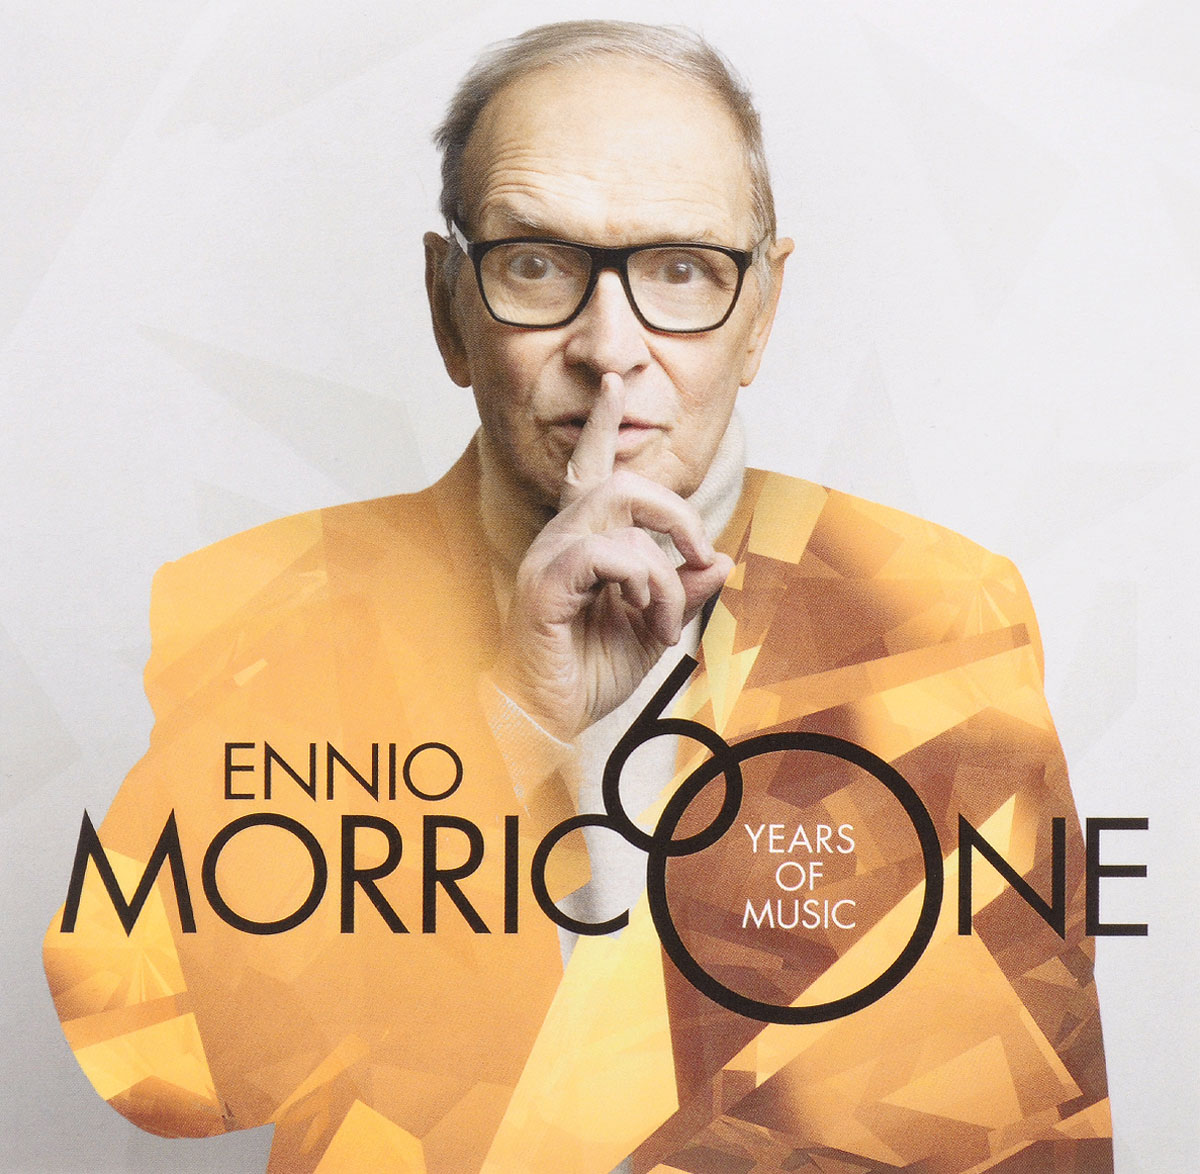 Эннио Морриконе Ennio Morricone. Morricone 60 Years Of Music (CD + DVD) эннио морриконе ennio morricone morricone 60 years of music